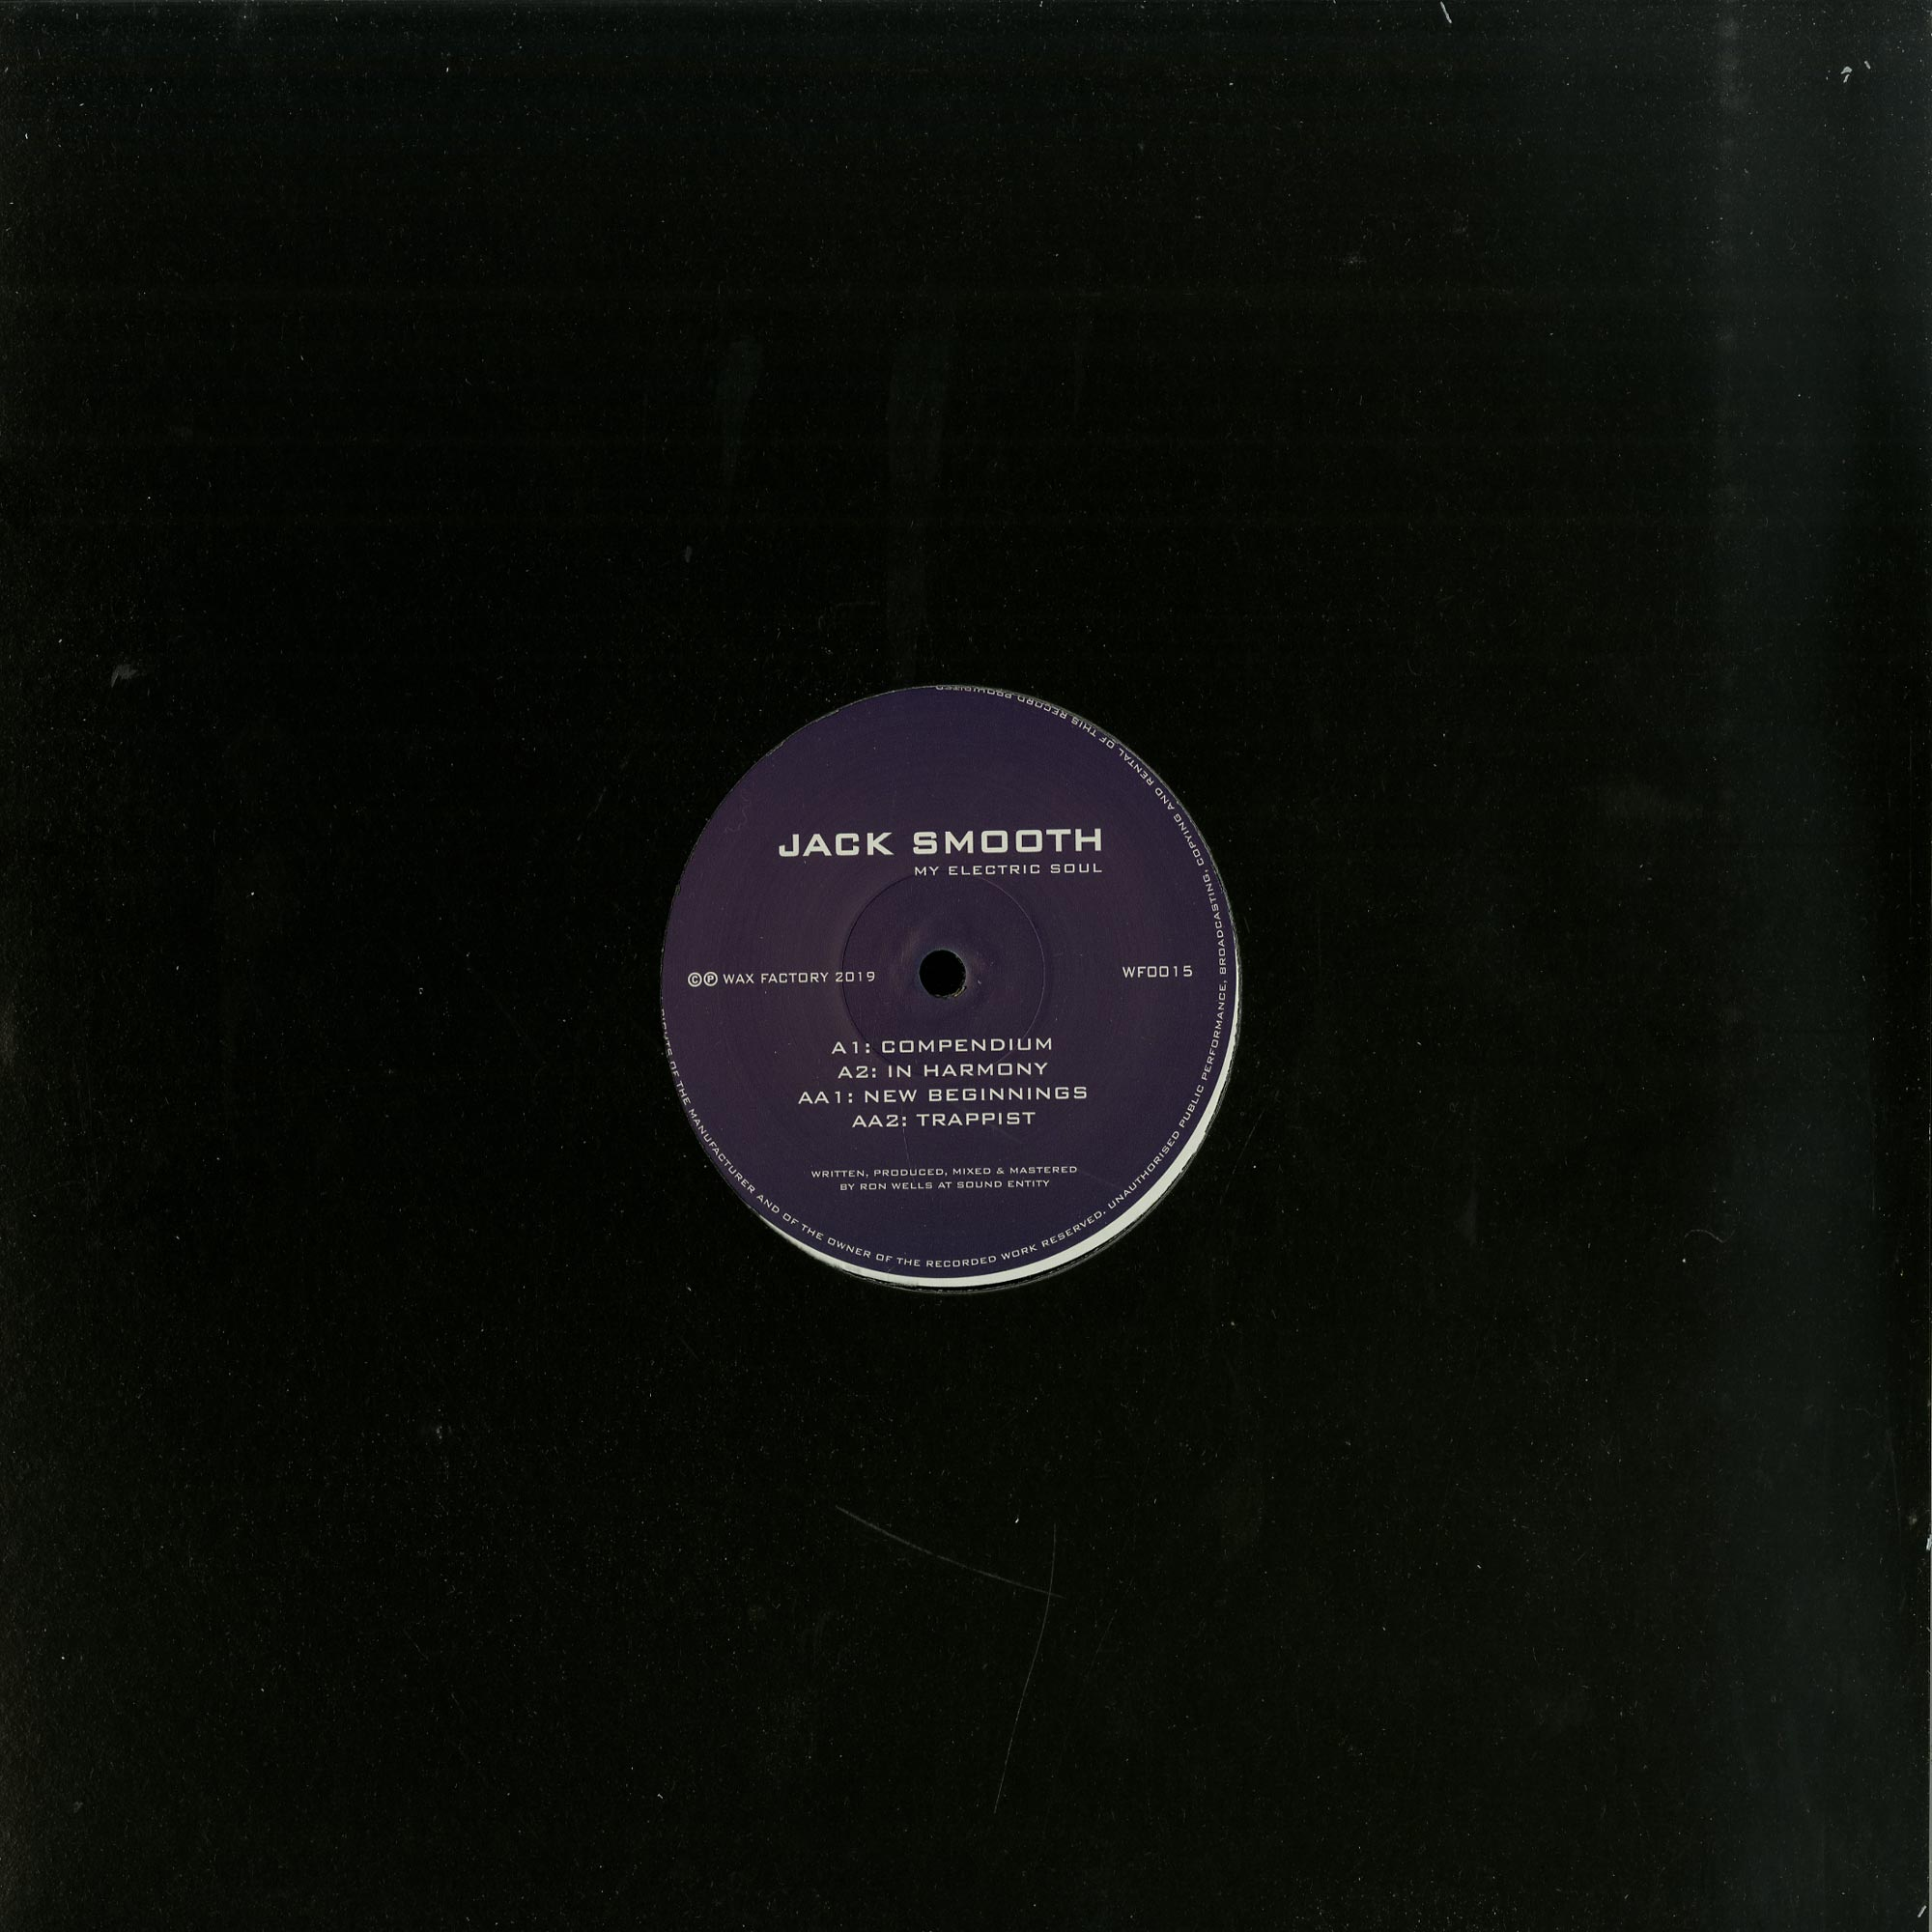 Jack Smooth - MY ELECTRIC SOUL